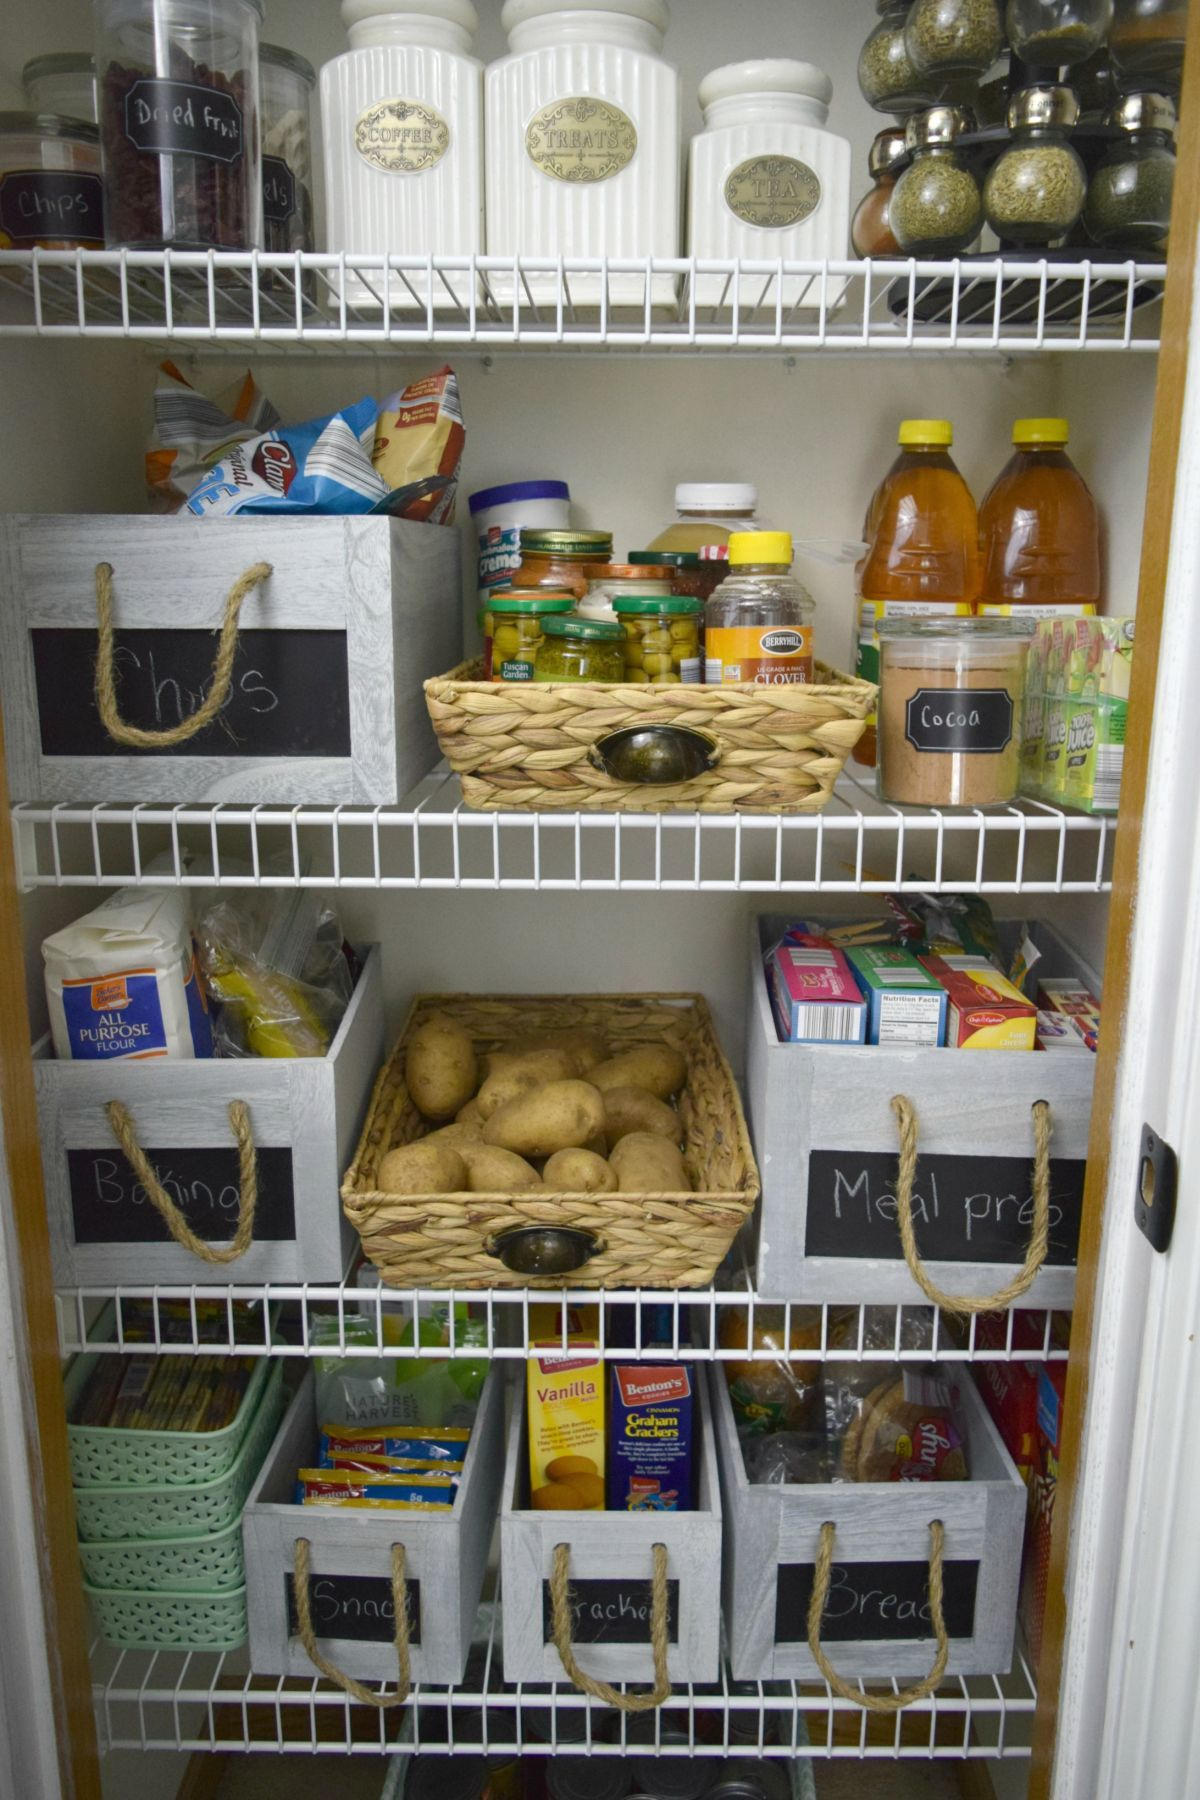 10 ways to achieve the most organized pantry ever - Organized Pantry